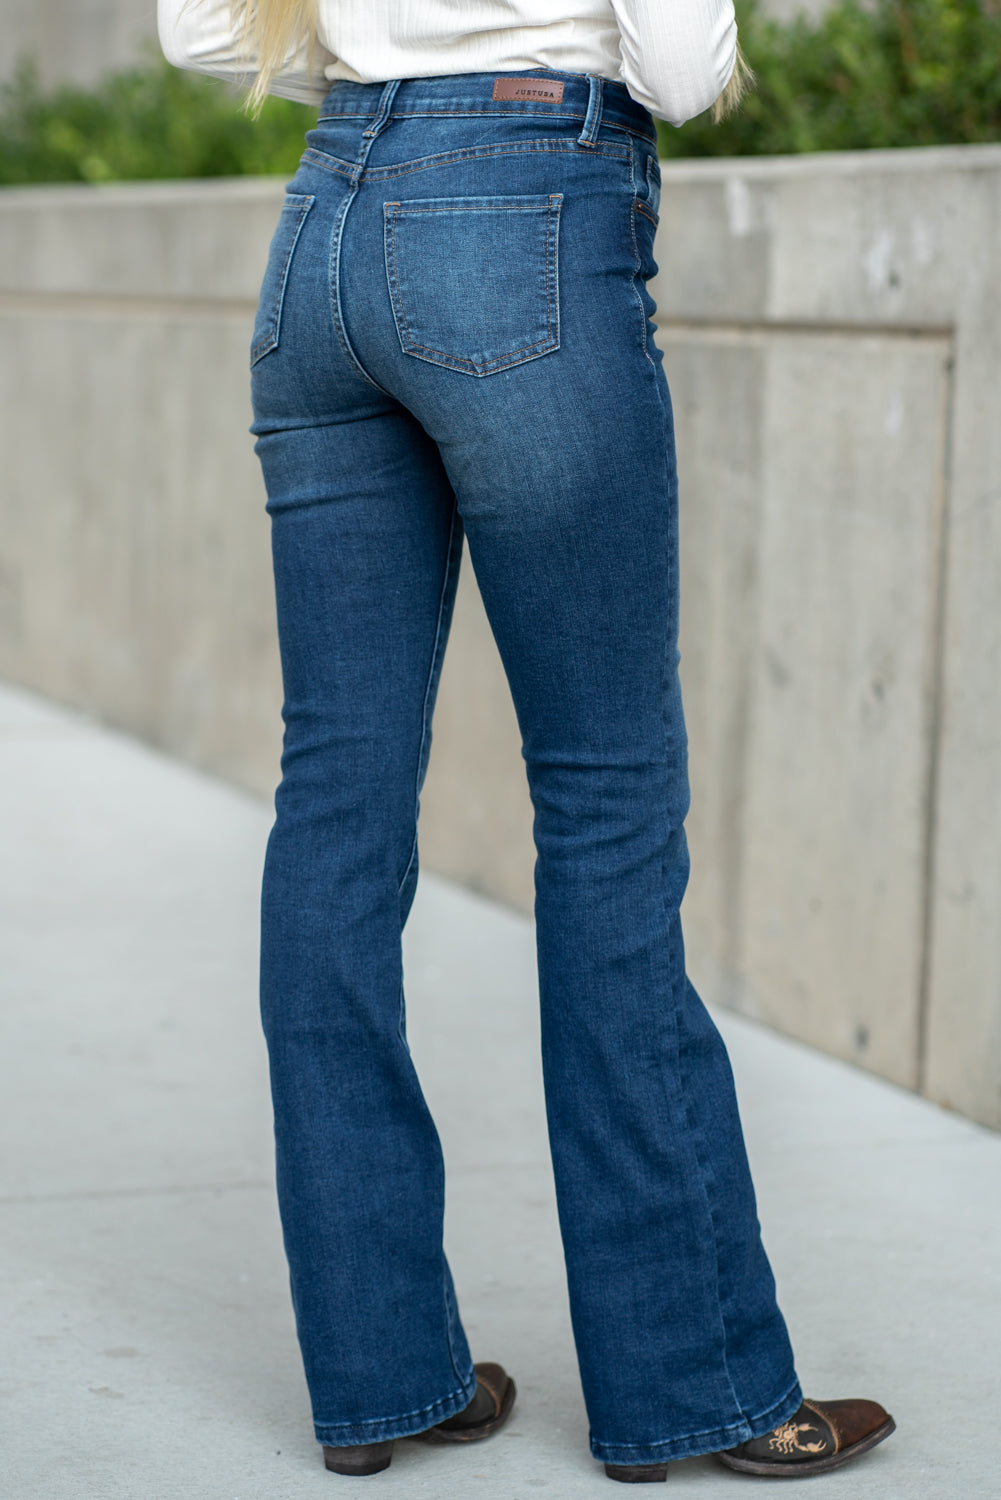 "Just USA Jeans  Color: Medium Dark Wash Boot cut, 32"" Inseam Rise: High Rise, 10"" Front Rise 3% Rayon, 67.8% Rayon 27.1% POLYESTER, 2.1% SPANDEX Machine Wash Separately In Cold Water Stitching: Classic Fly: Zipper Style #: JP100 Contact us for any additional measurements or sizing.  Haley is 5'6"" and wears size 25 in jeans, a small top and 7.5 in shoes. She is wearing a 25 in these jeans."